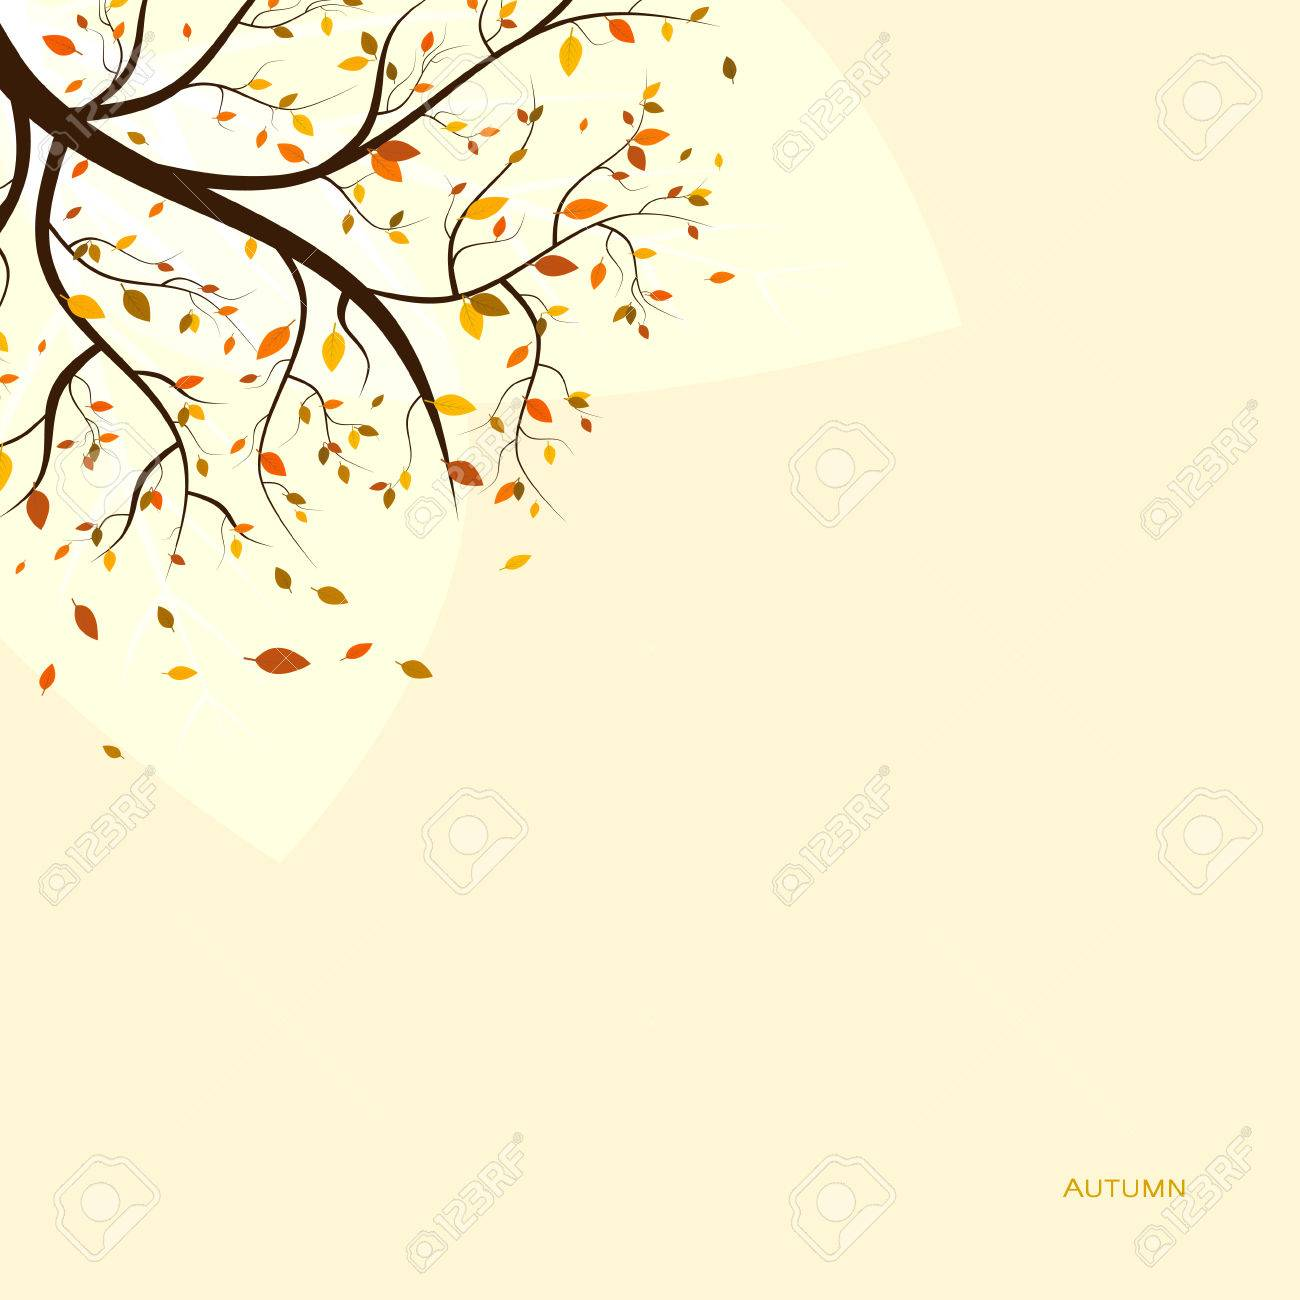 fall autumn background with colorful leaves on tree royalty free